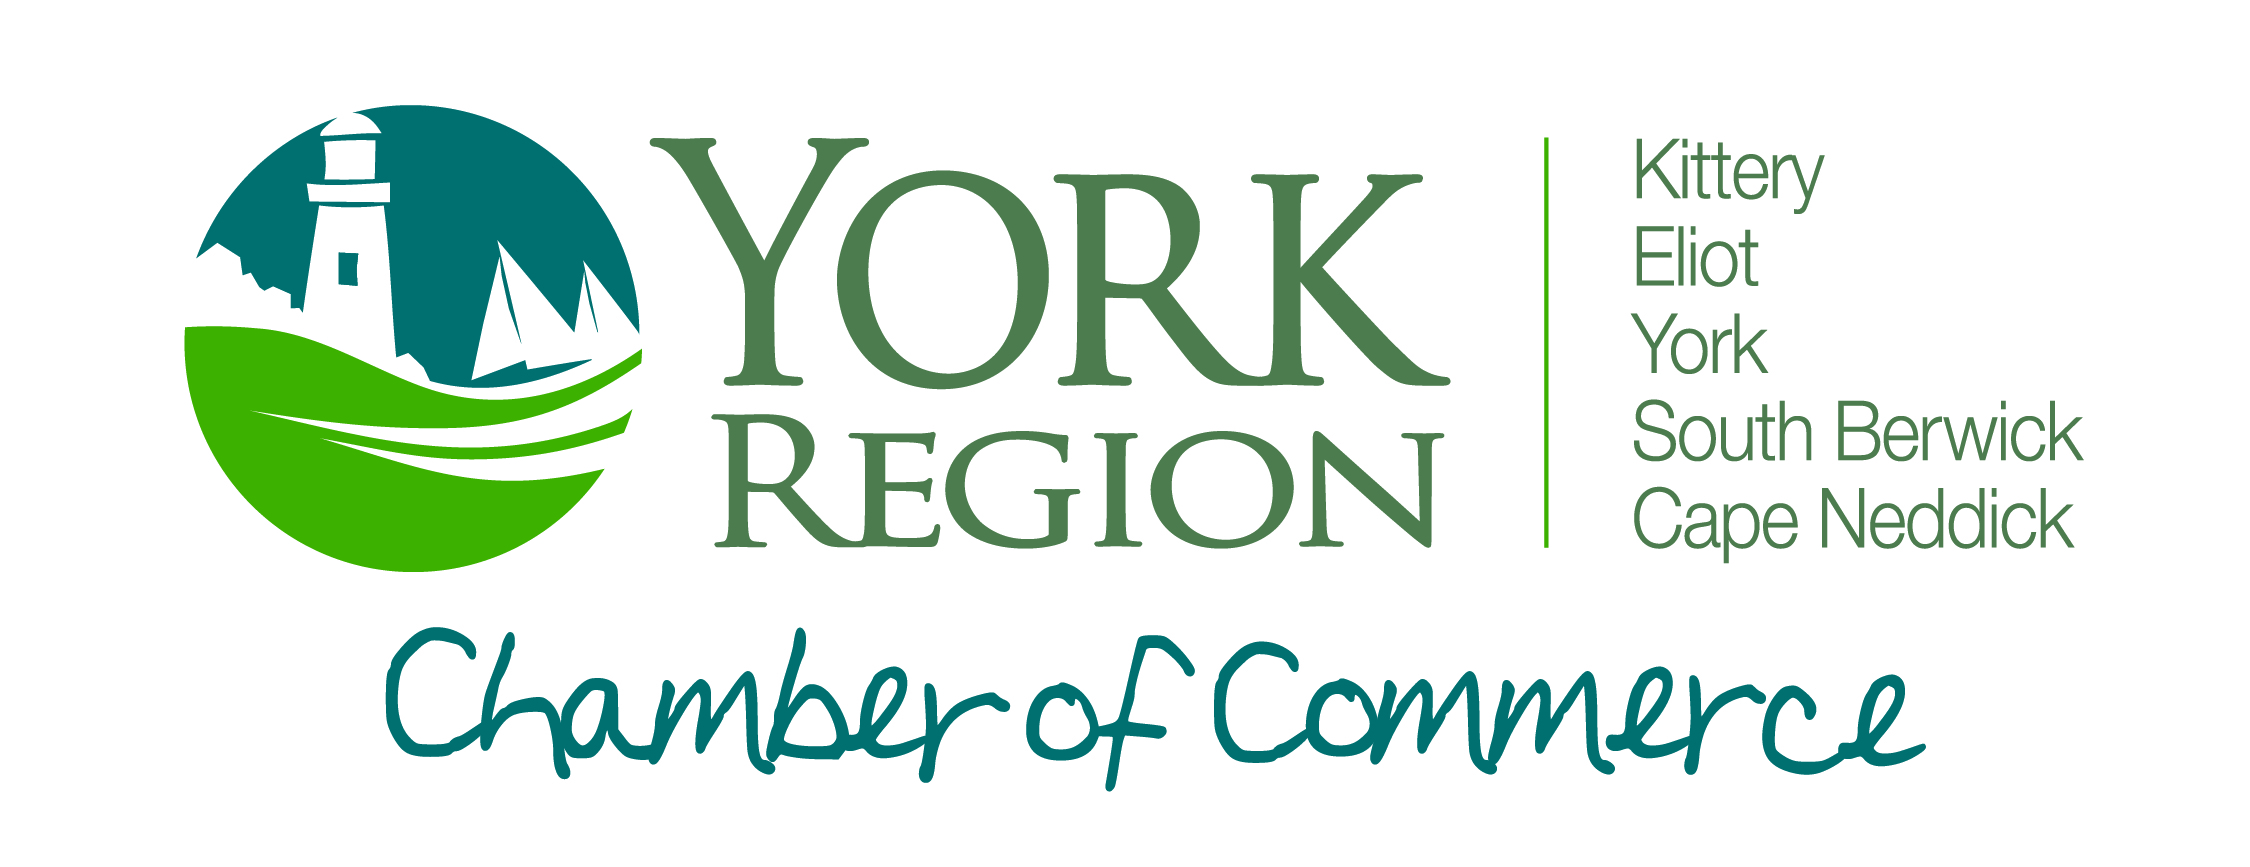 York Region Chamber of Commerce